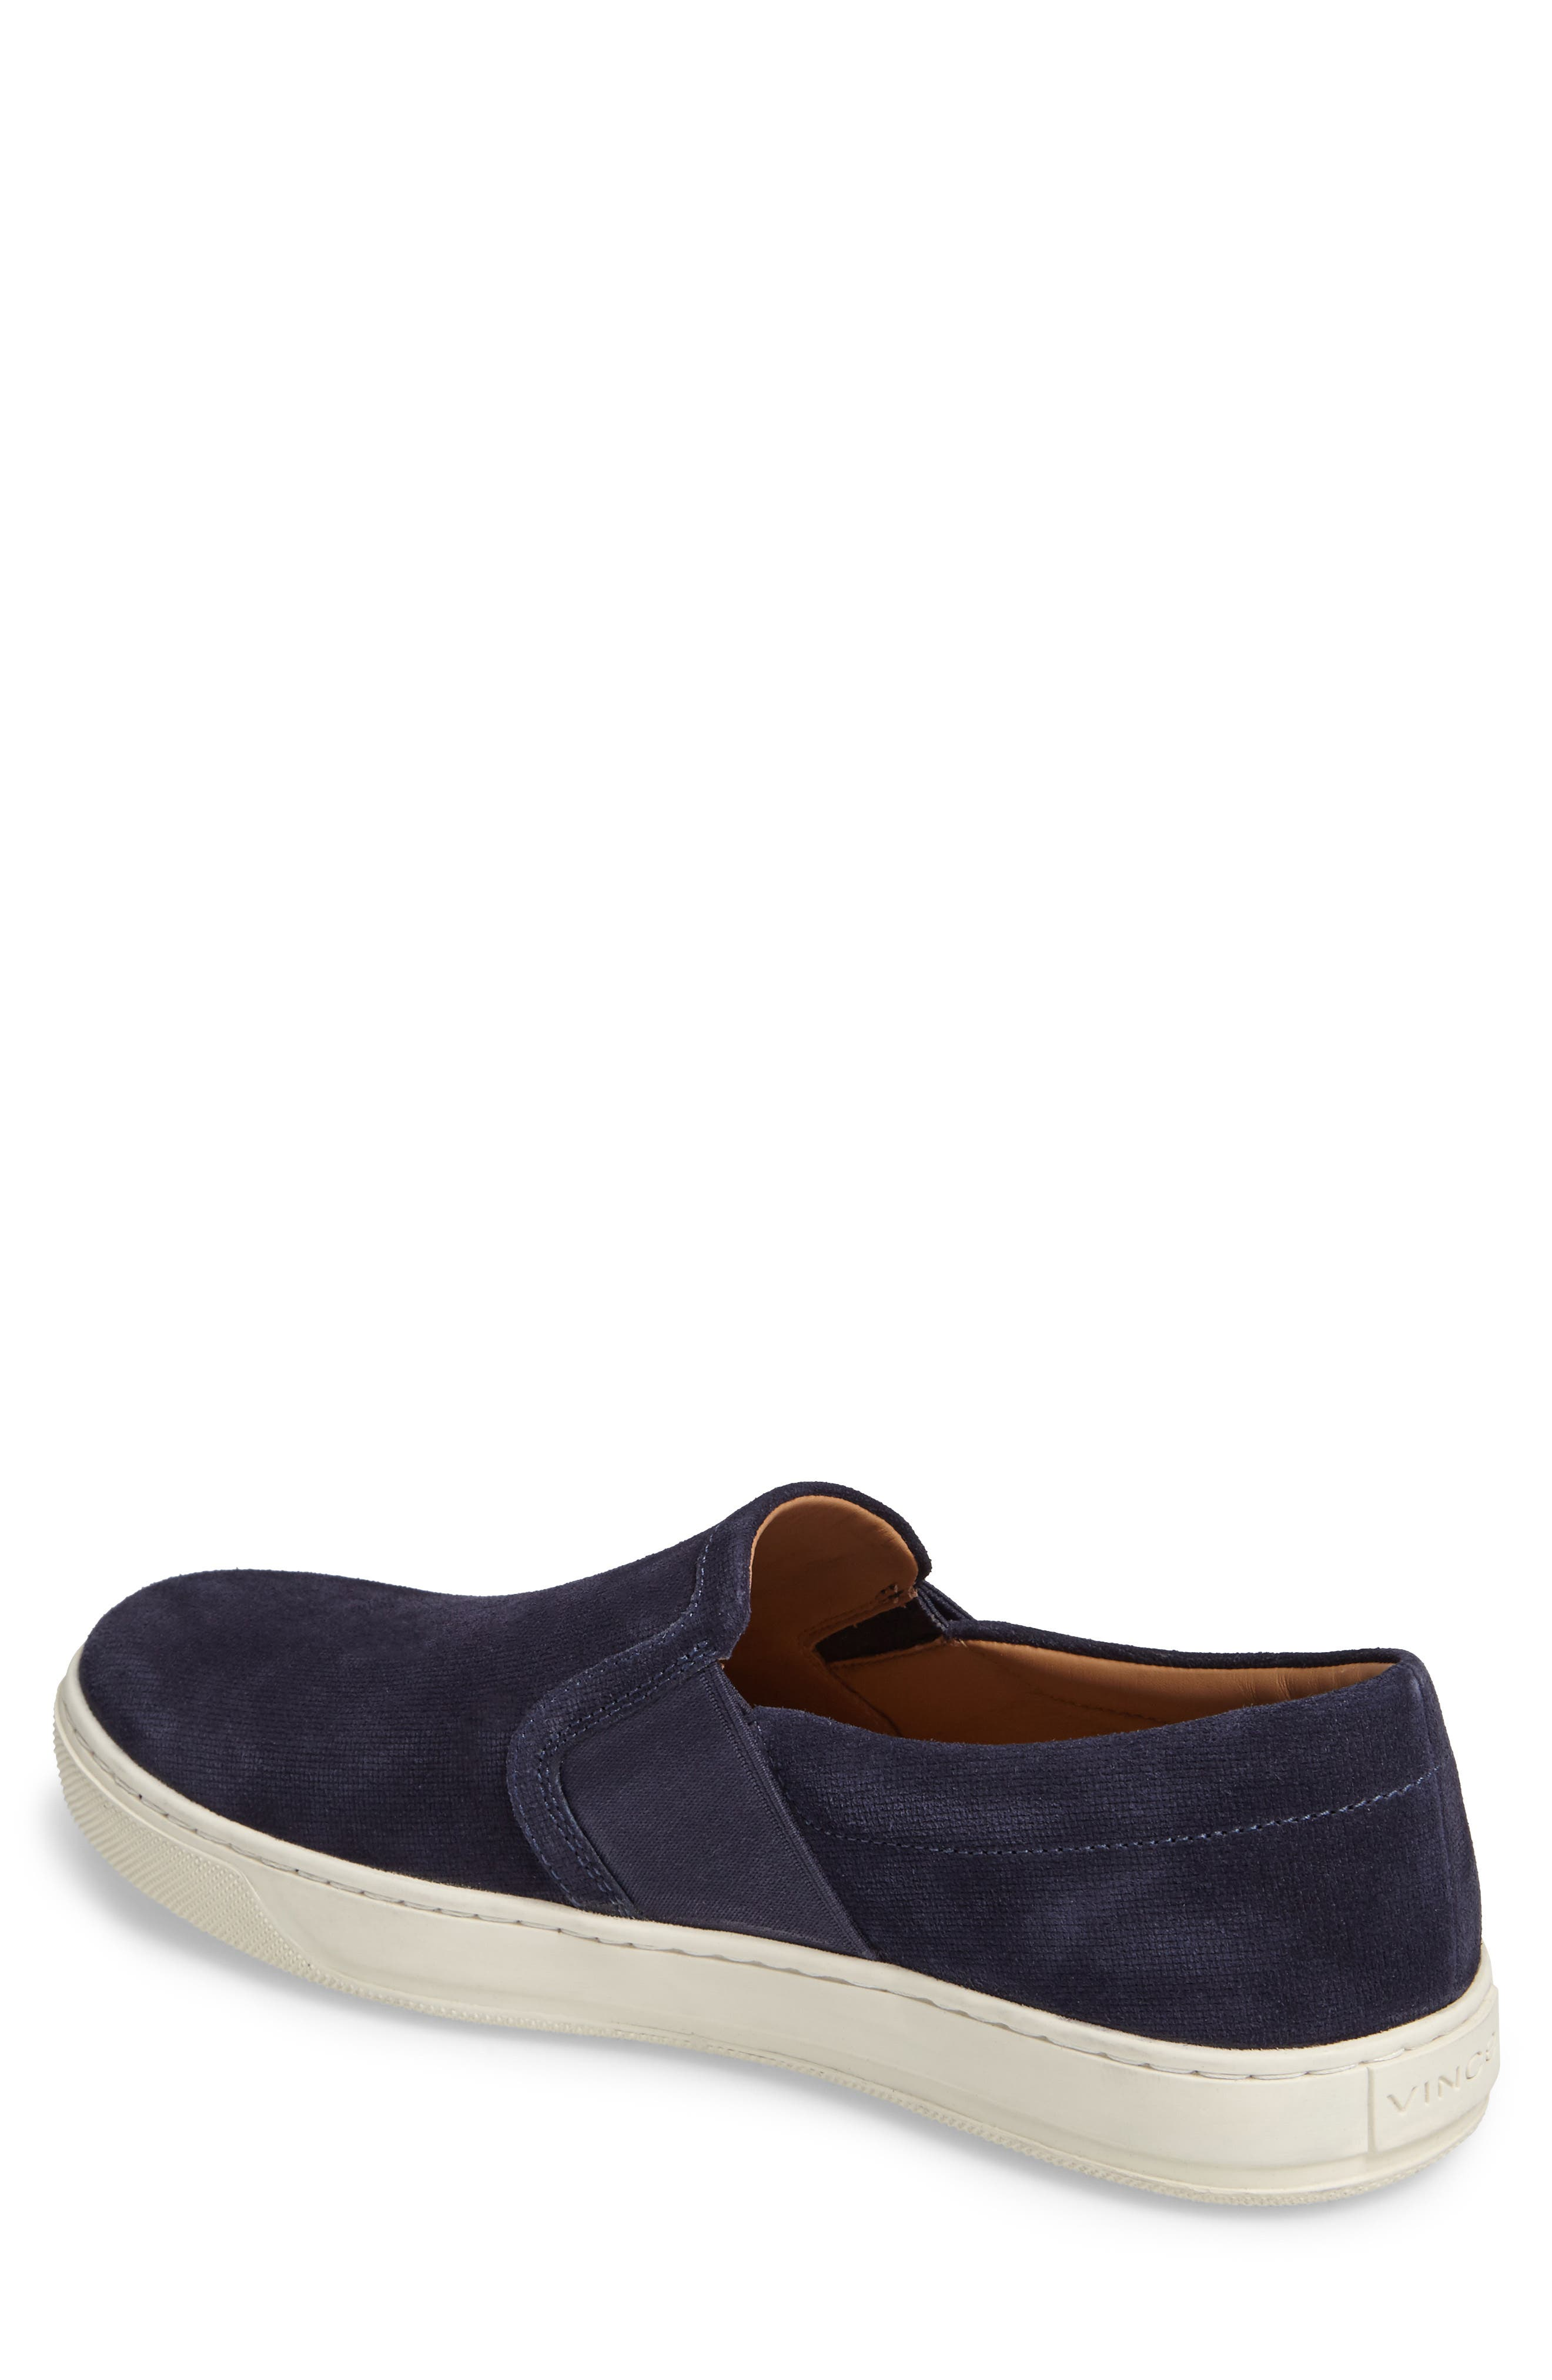 Adler Slip-On,                             Alternate thumbnail 2, color,                             Coastal Suede